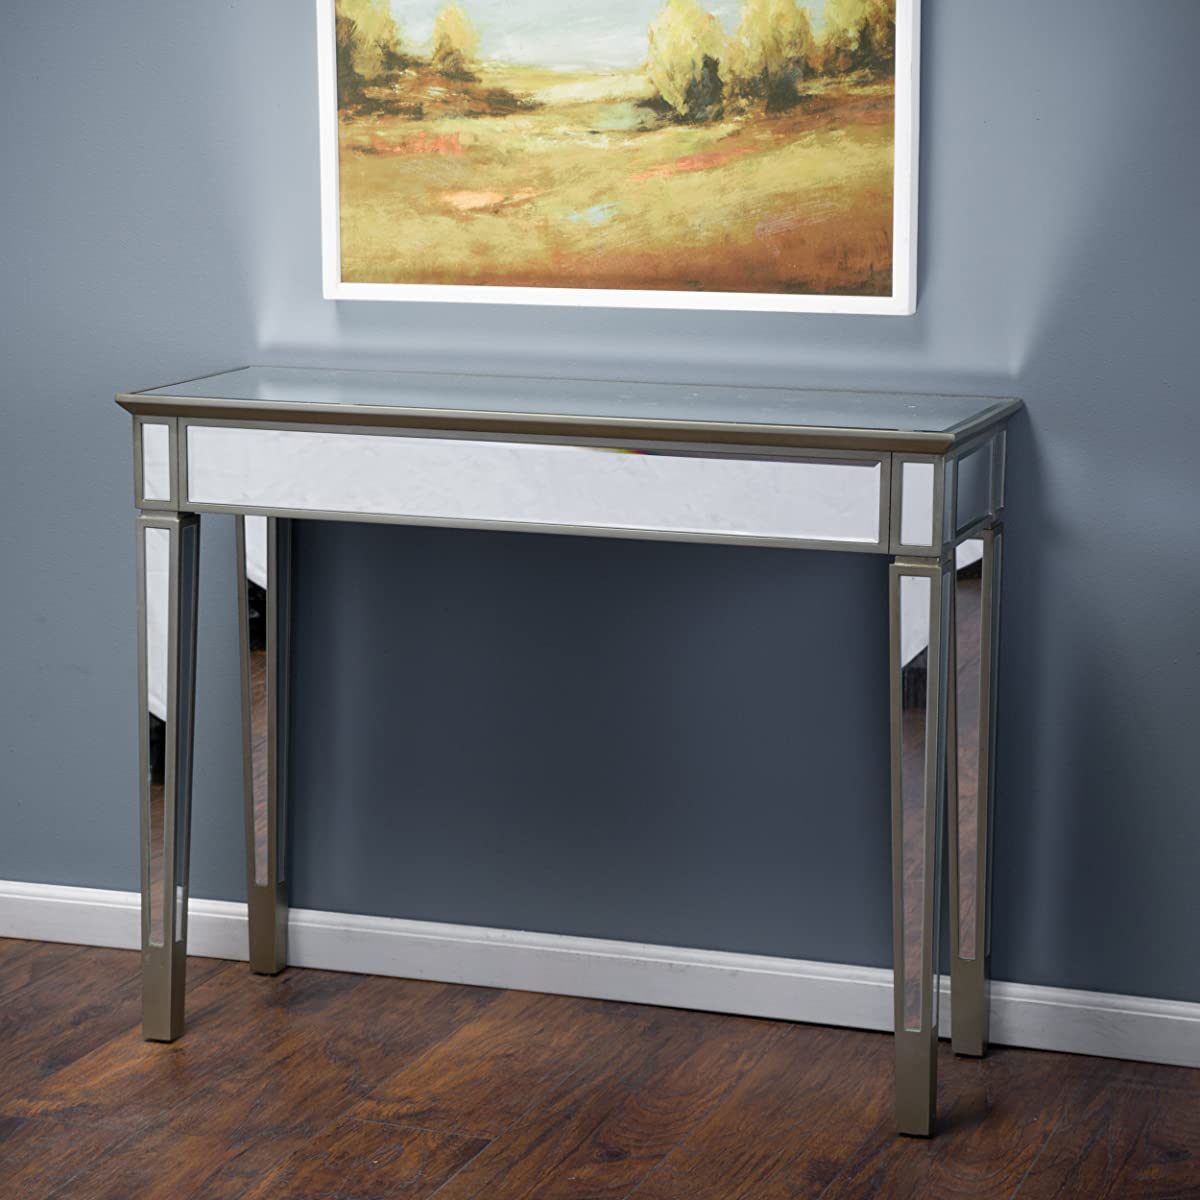 Great Deal Furniture Graham Mirror Console Table